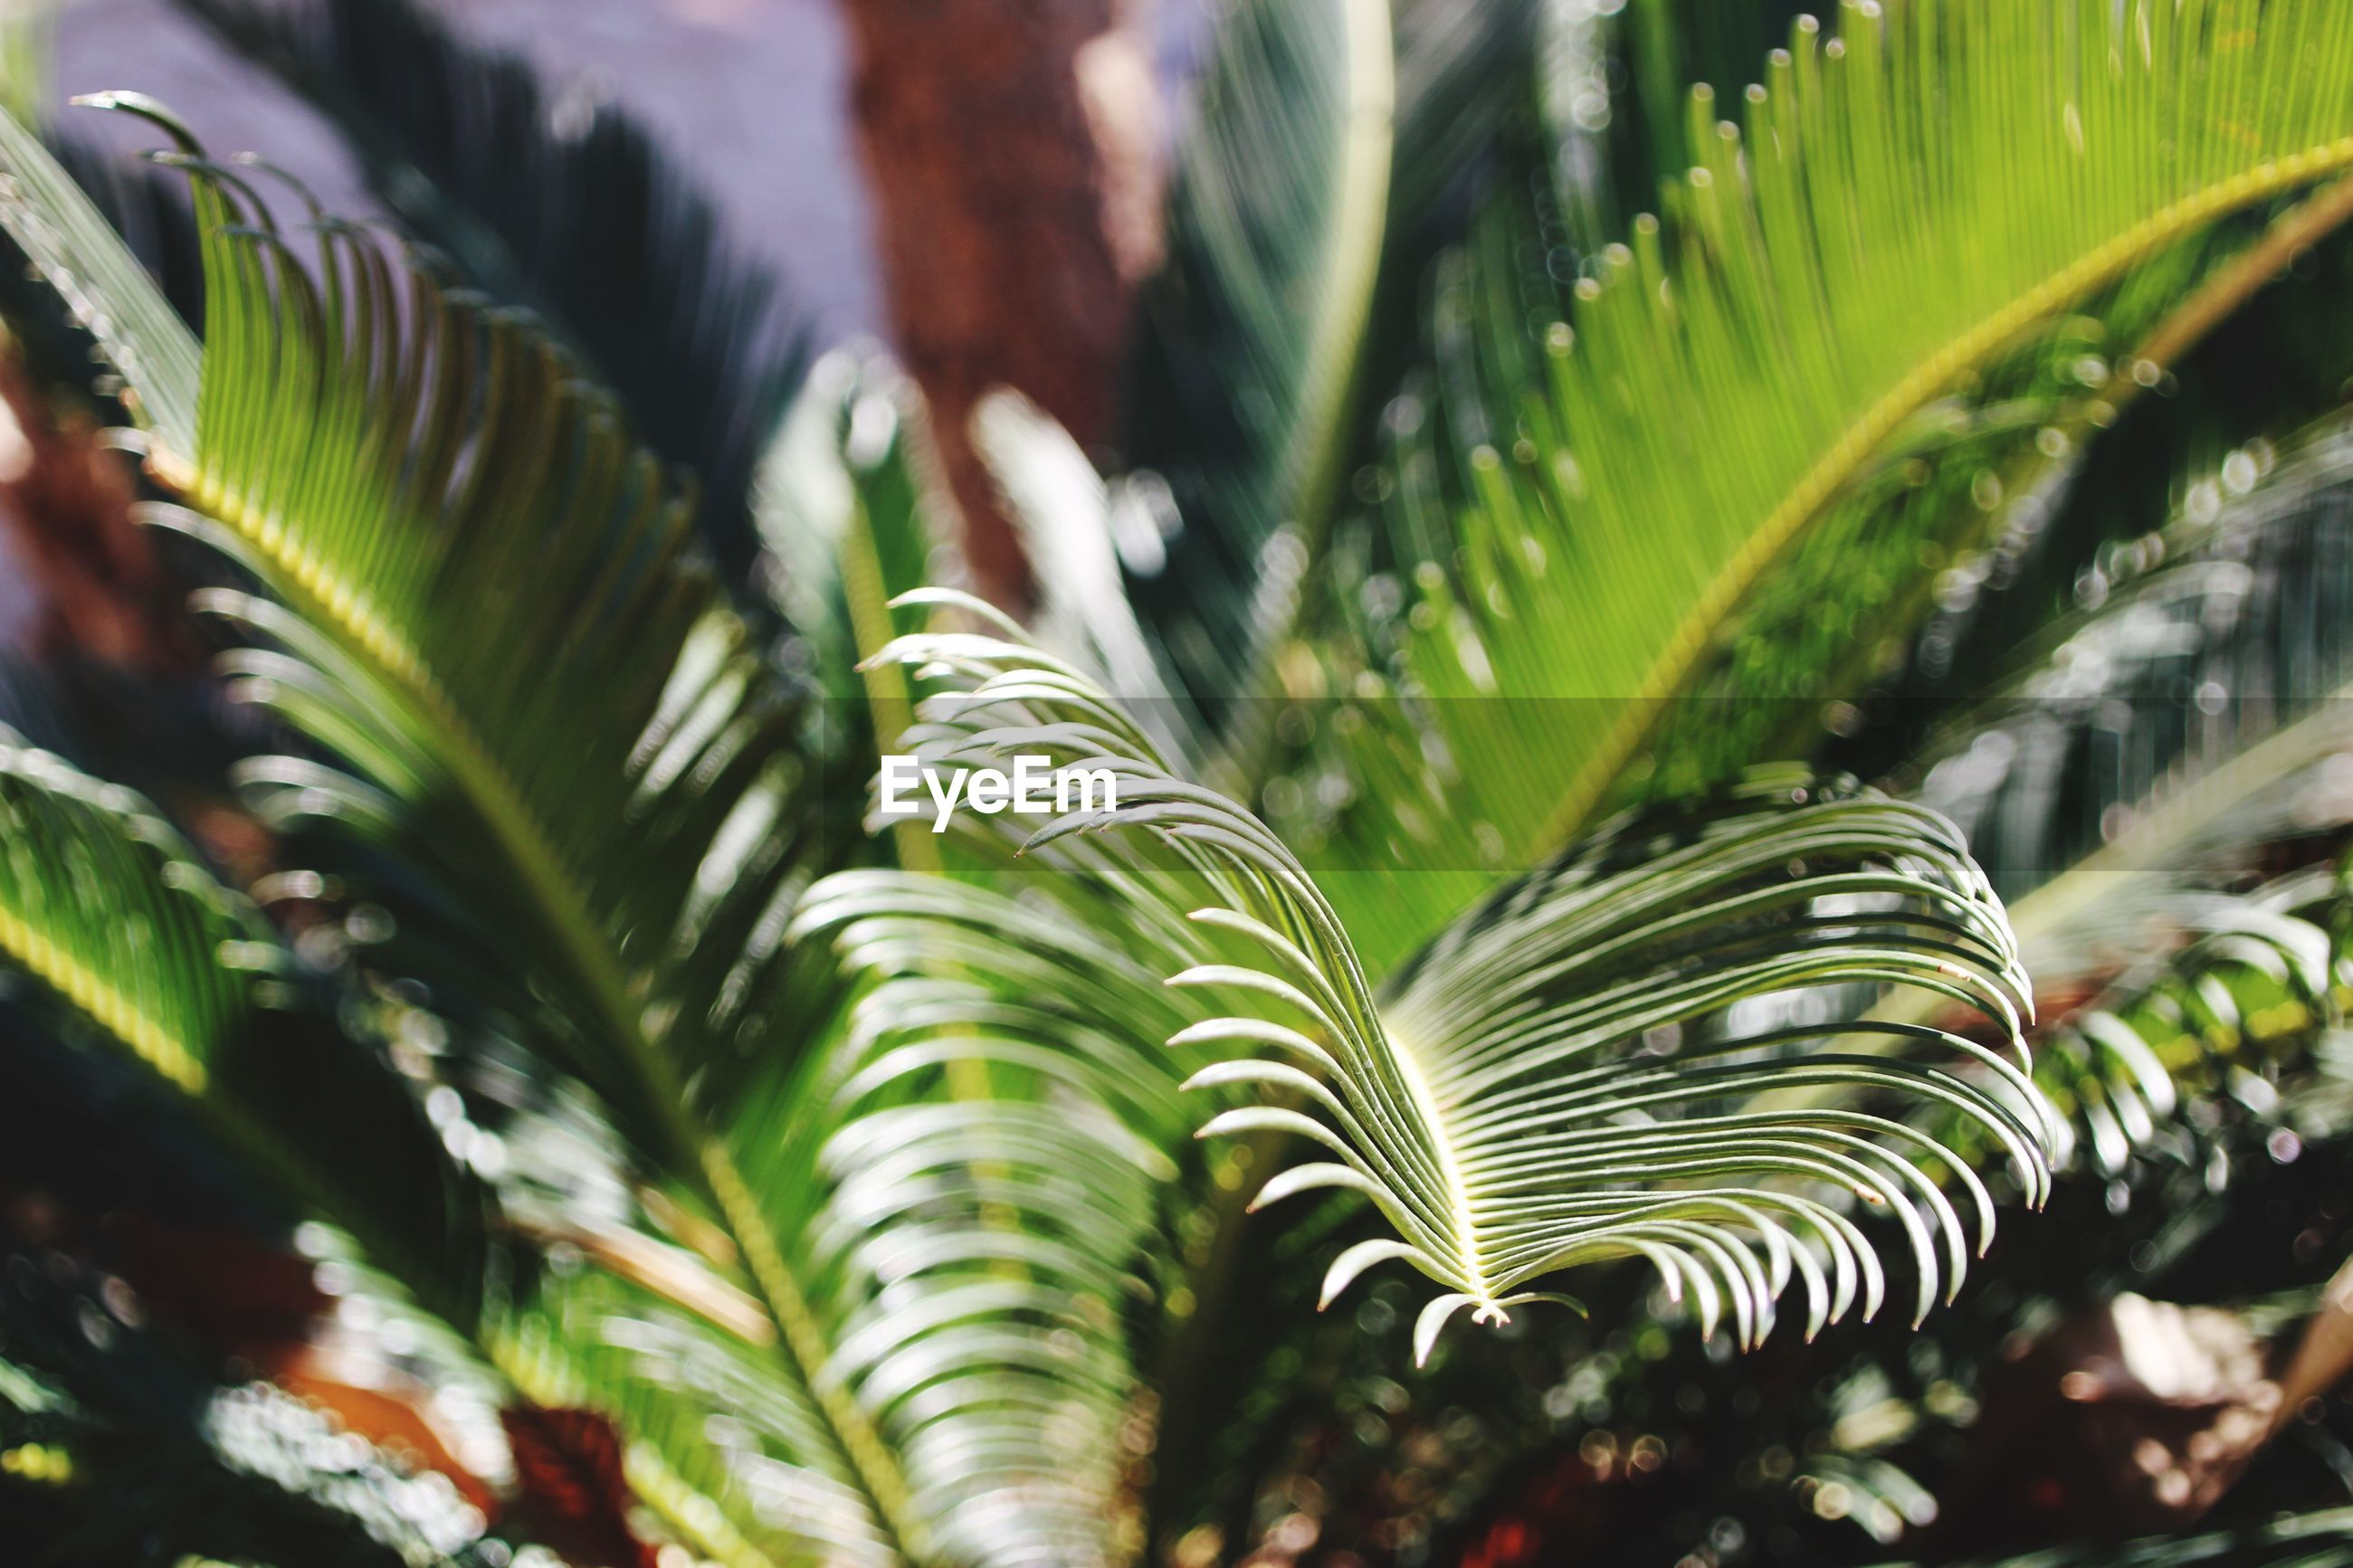 CLOSE-UP OF PALM LEAVES AGAINST TREES